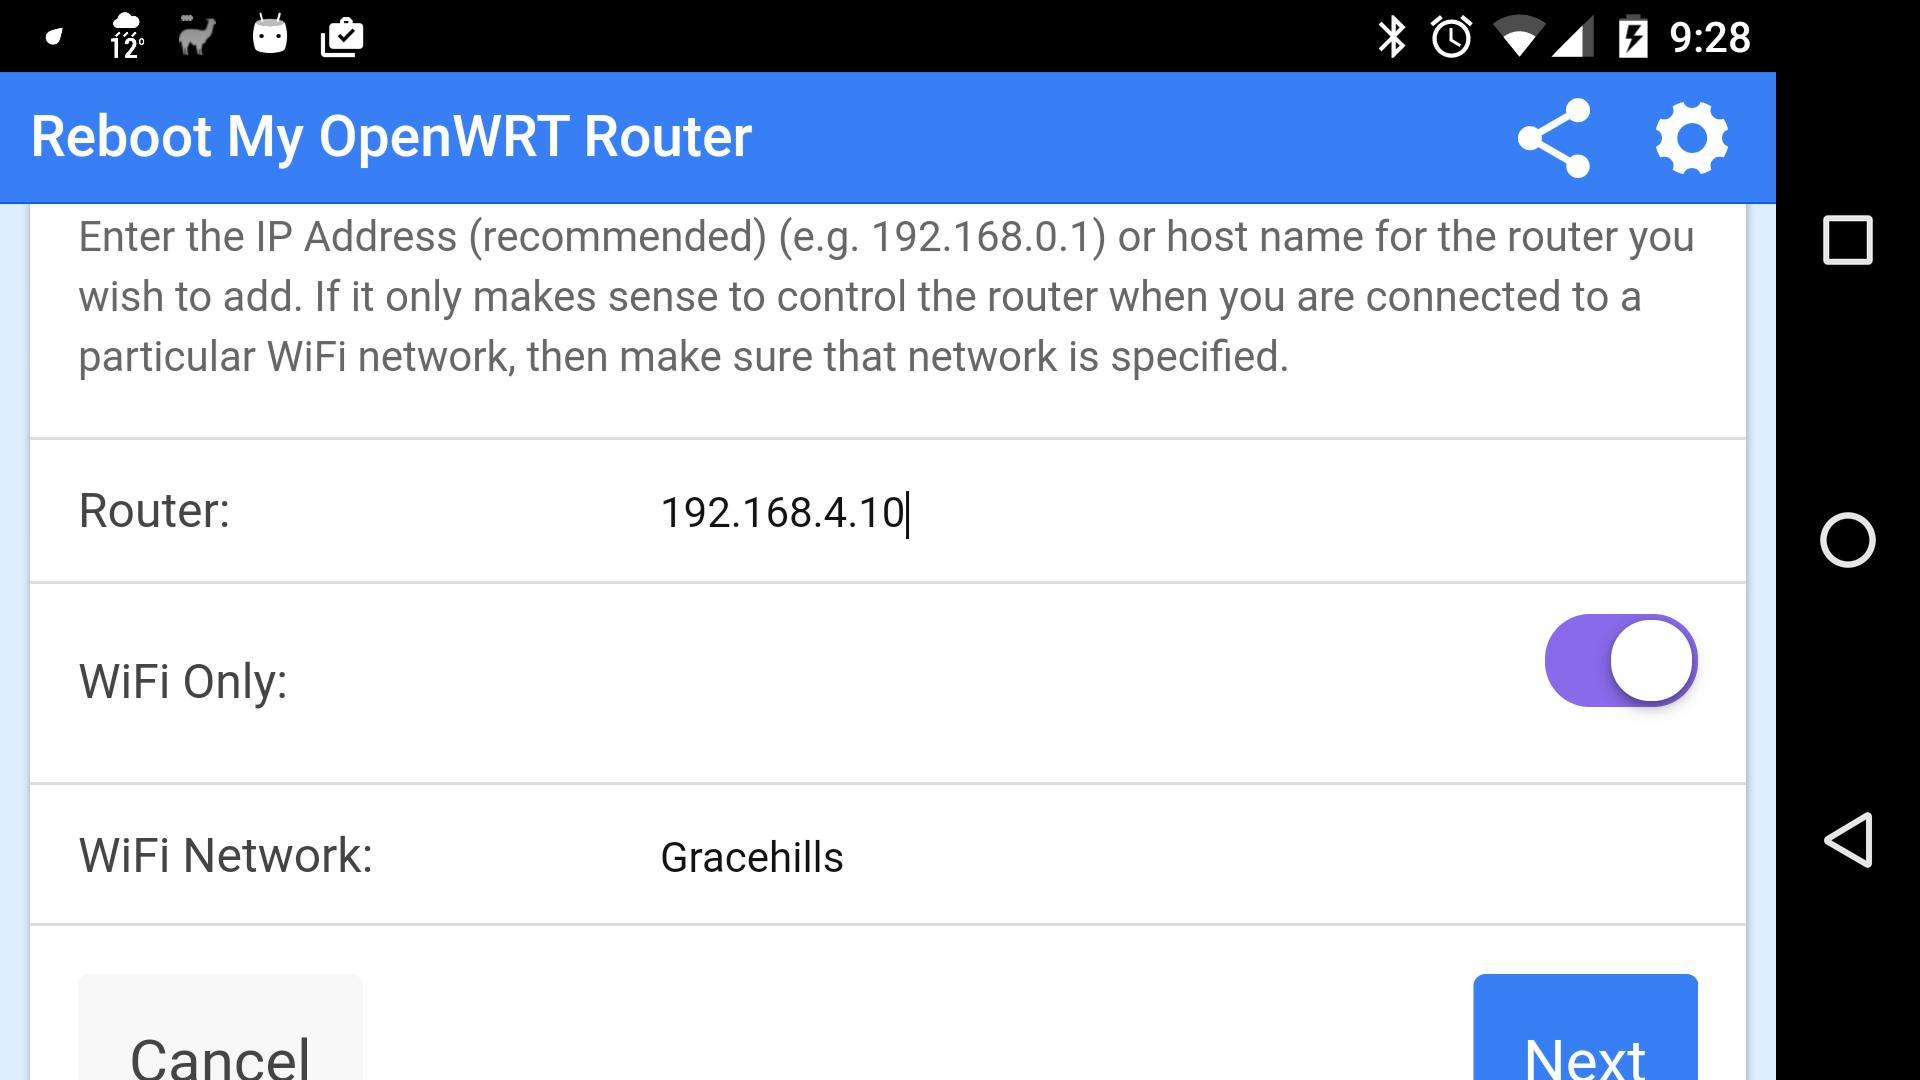 Reboot My OpenWRT Router for Android - APK Download